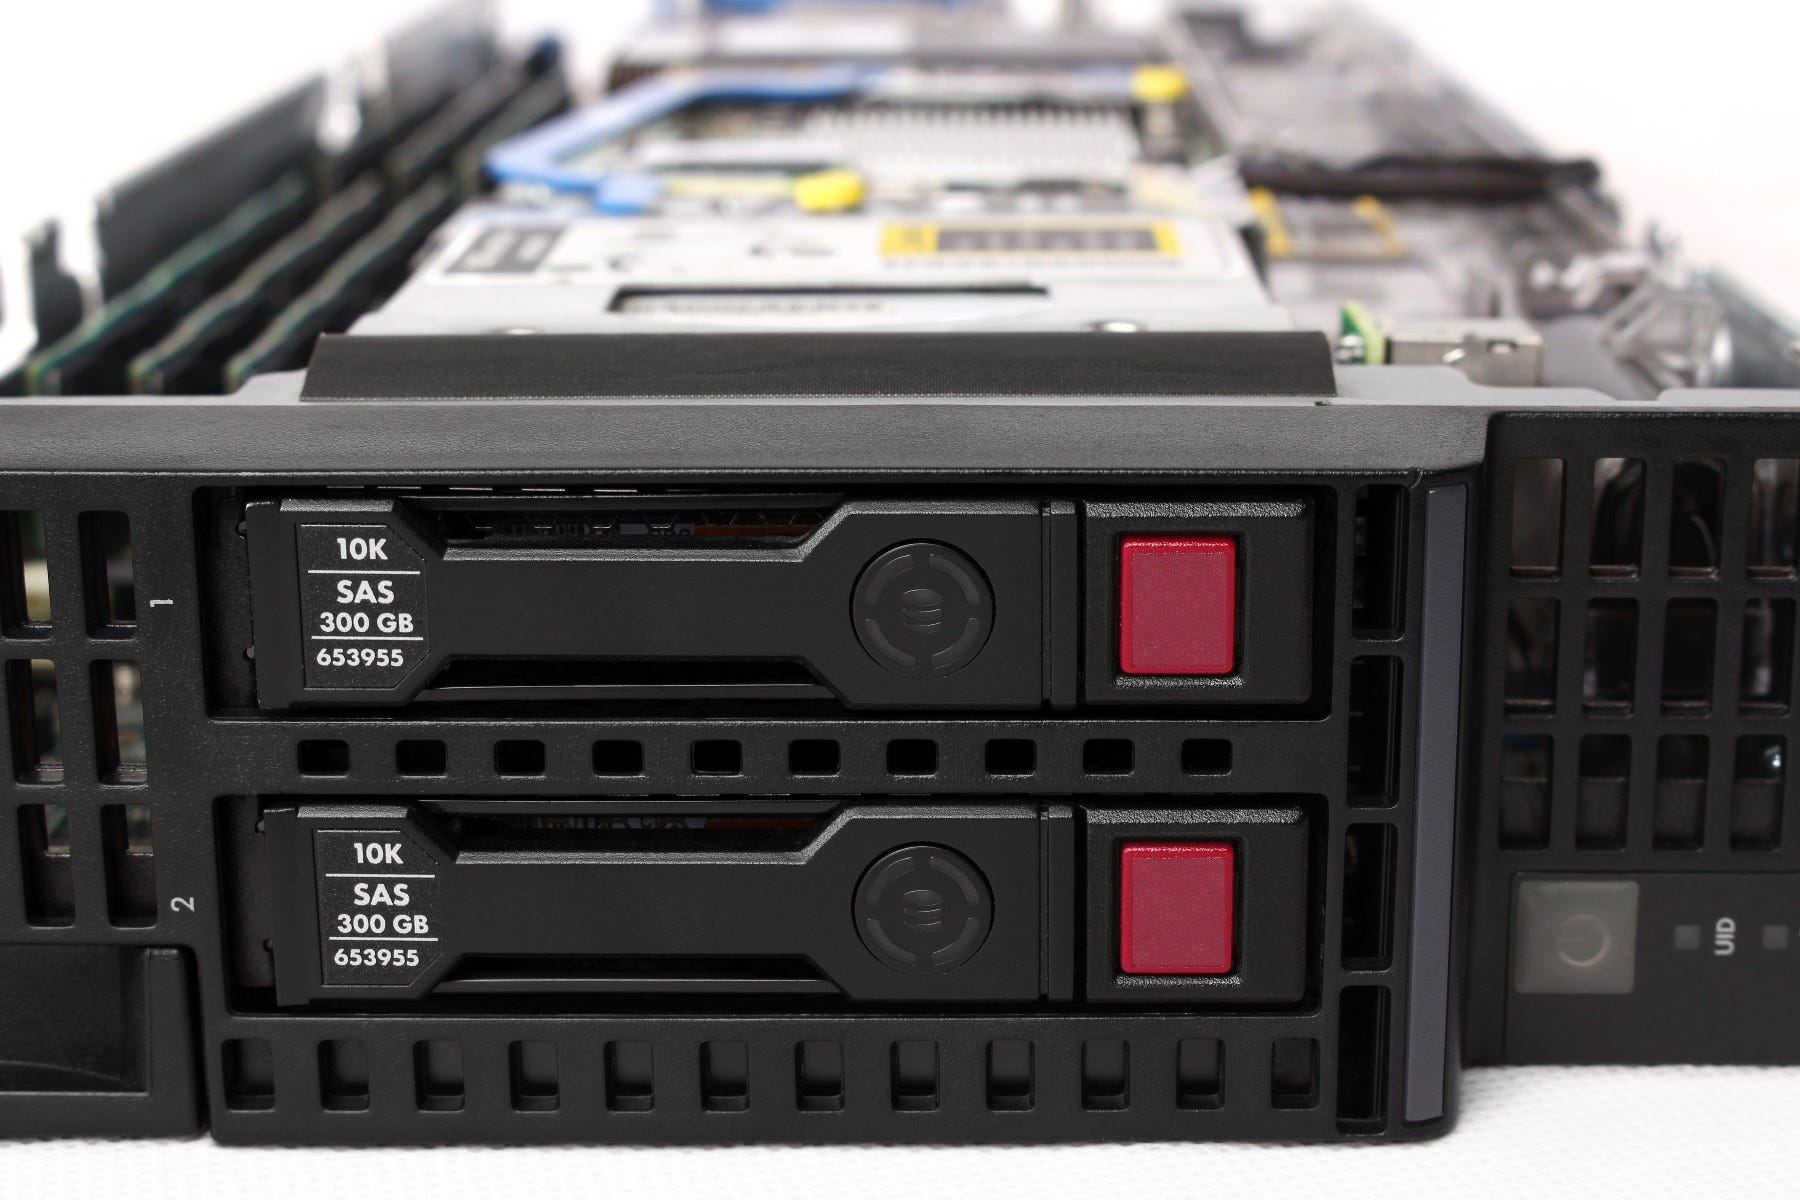 HP ProLiant BL460c Gen 8 Blade Server Review